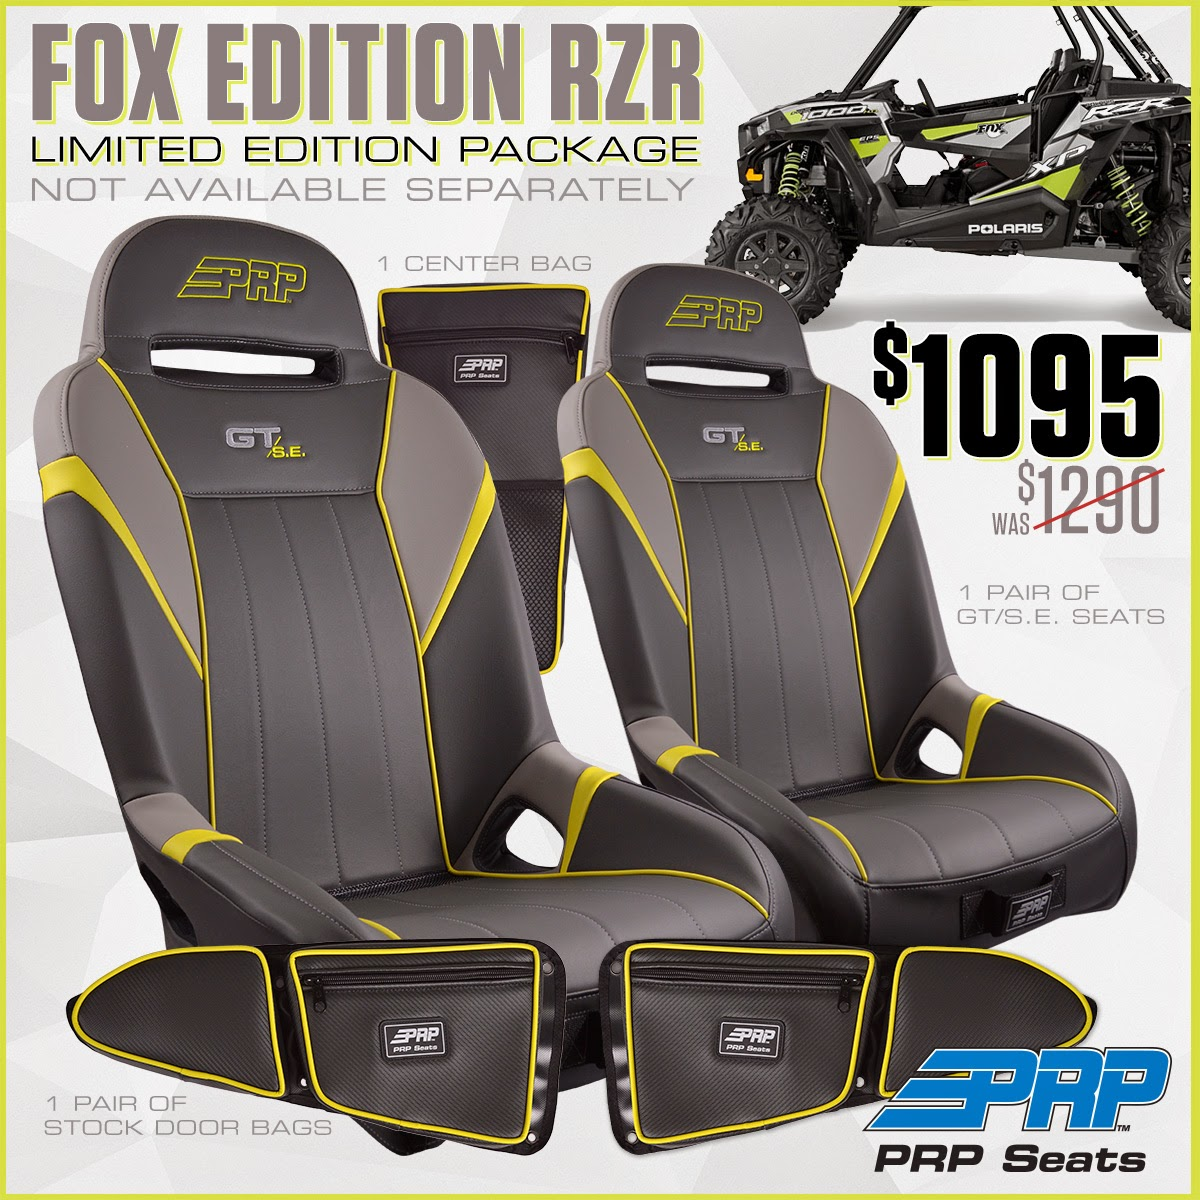 FOX Edition RZR, Limited Edition Package from PRP Seats